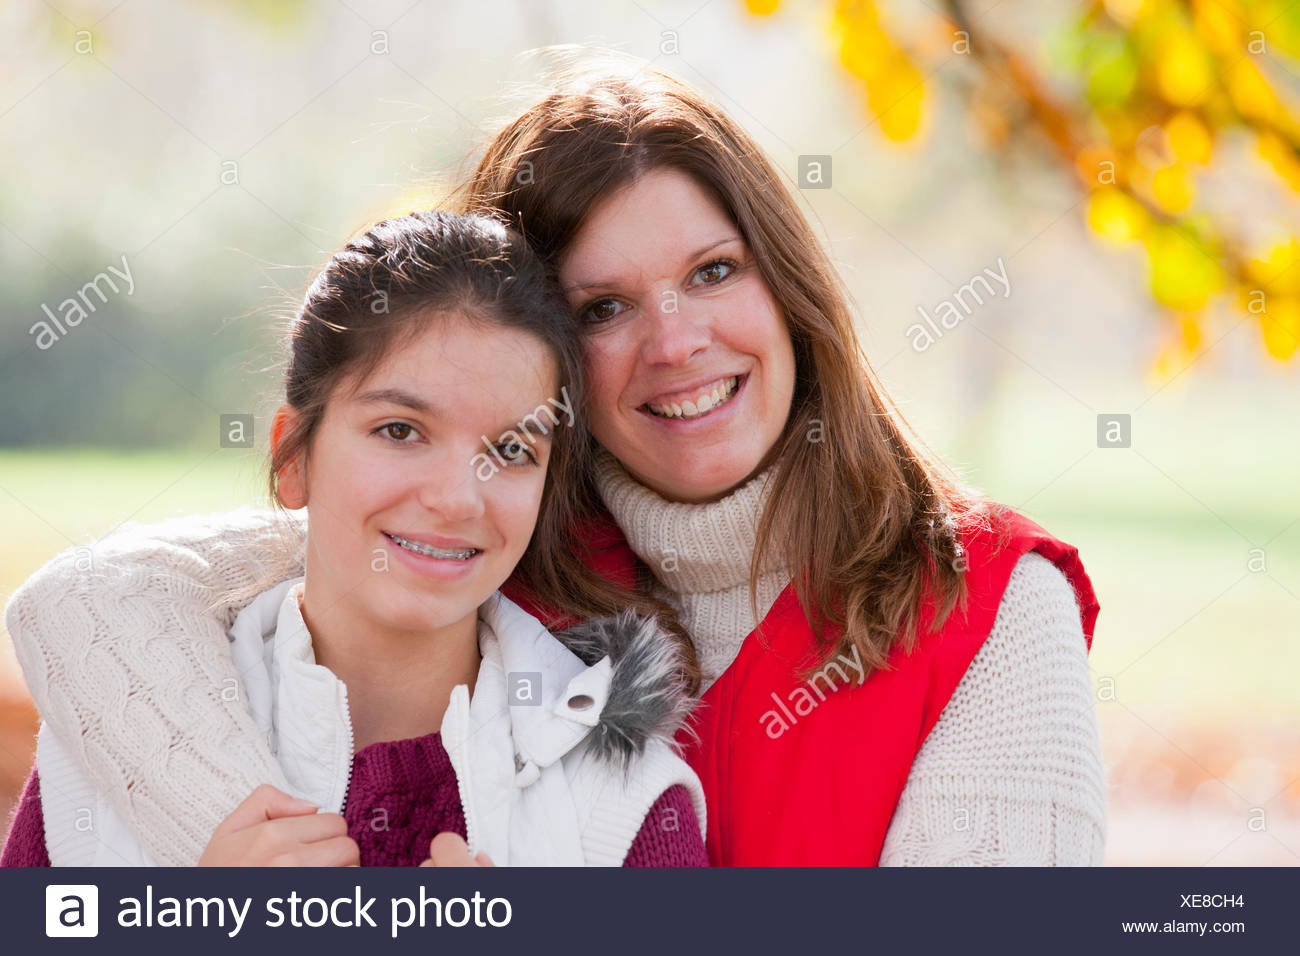 Mother with arm around daughter, looking at camera, in autumal park - Stock Image